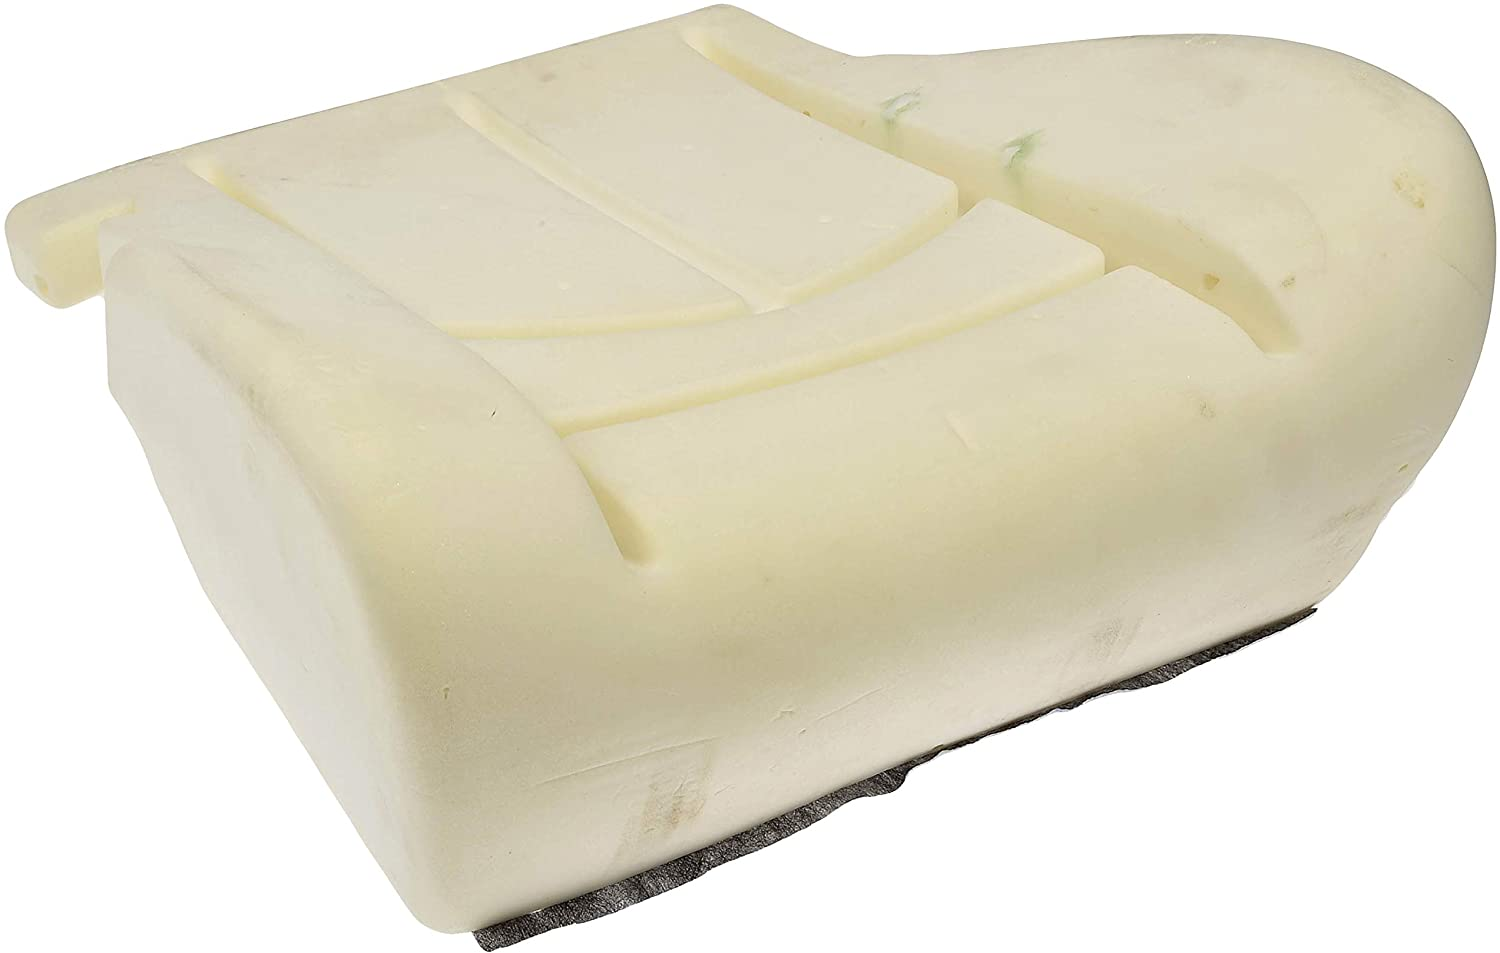 Dorman 926-894 Driver Side Seat Bottom Cushion Mesa Mall Ford M for Max 69% OFF Select